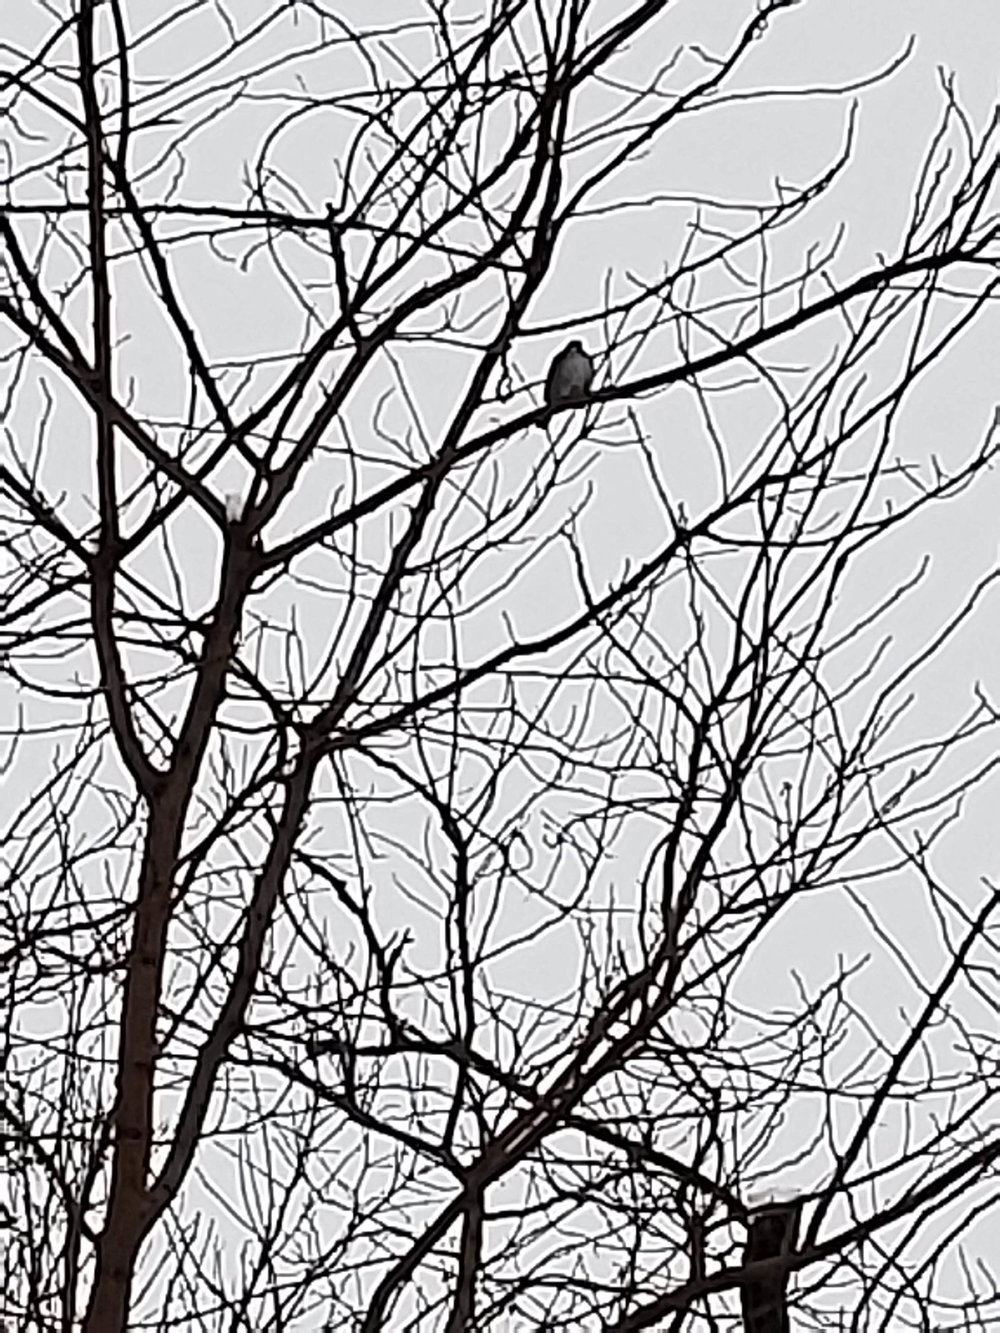 Winter bird against a grey sky.